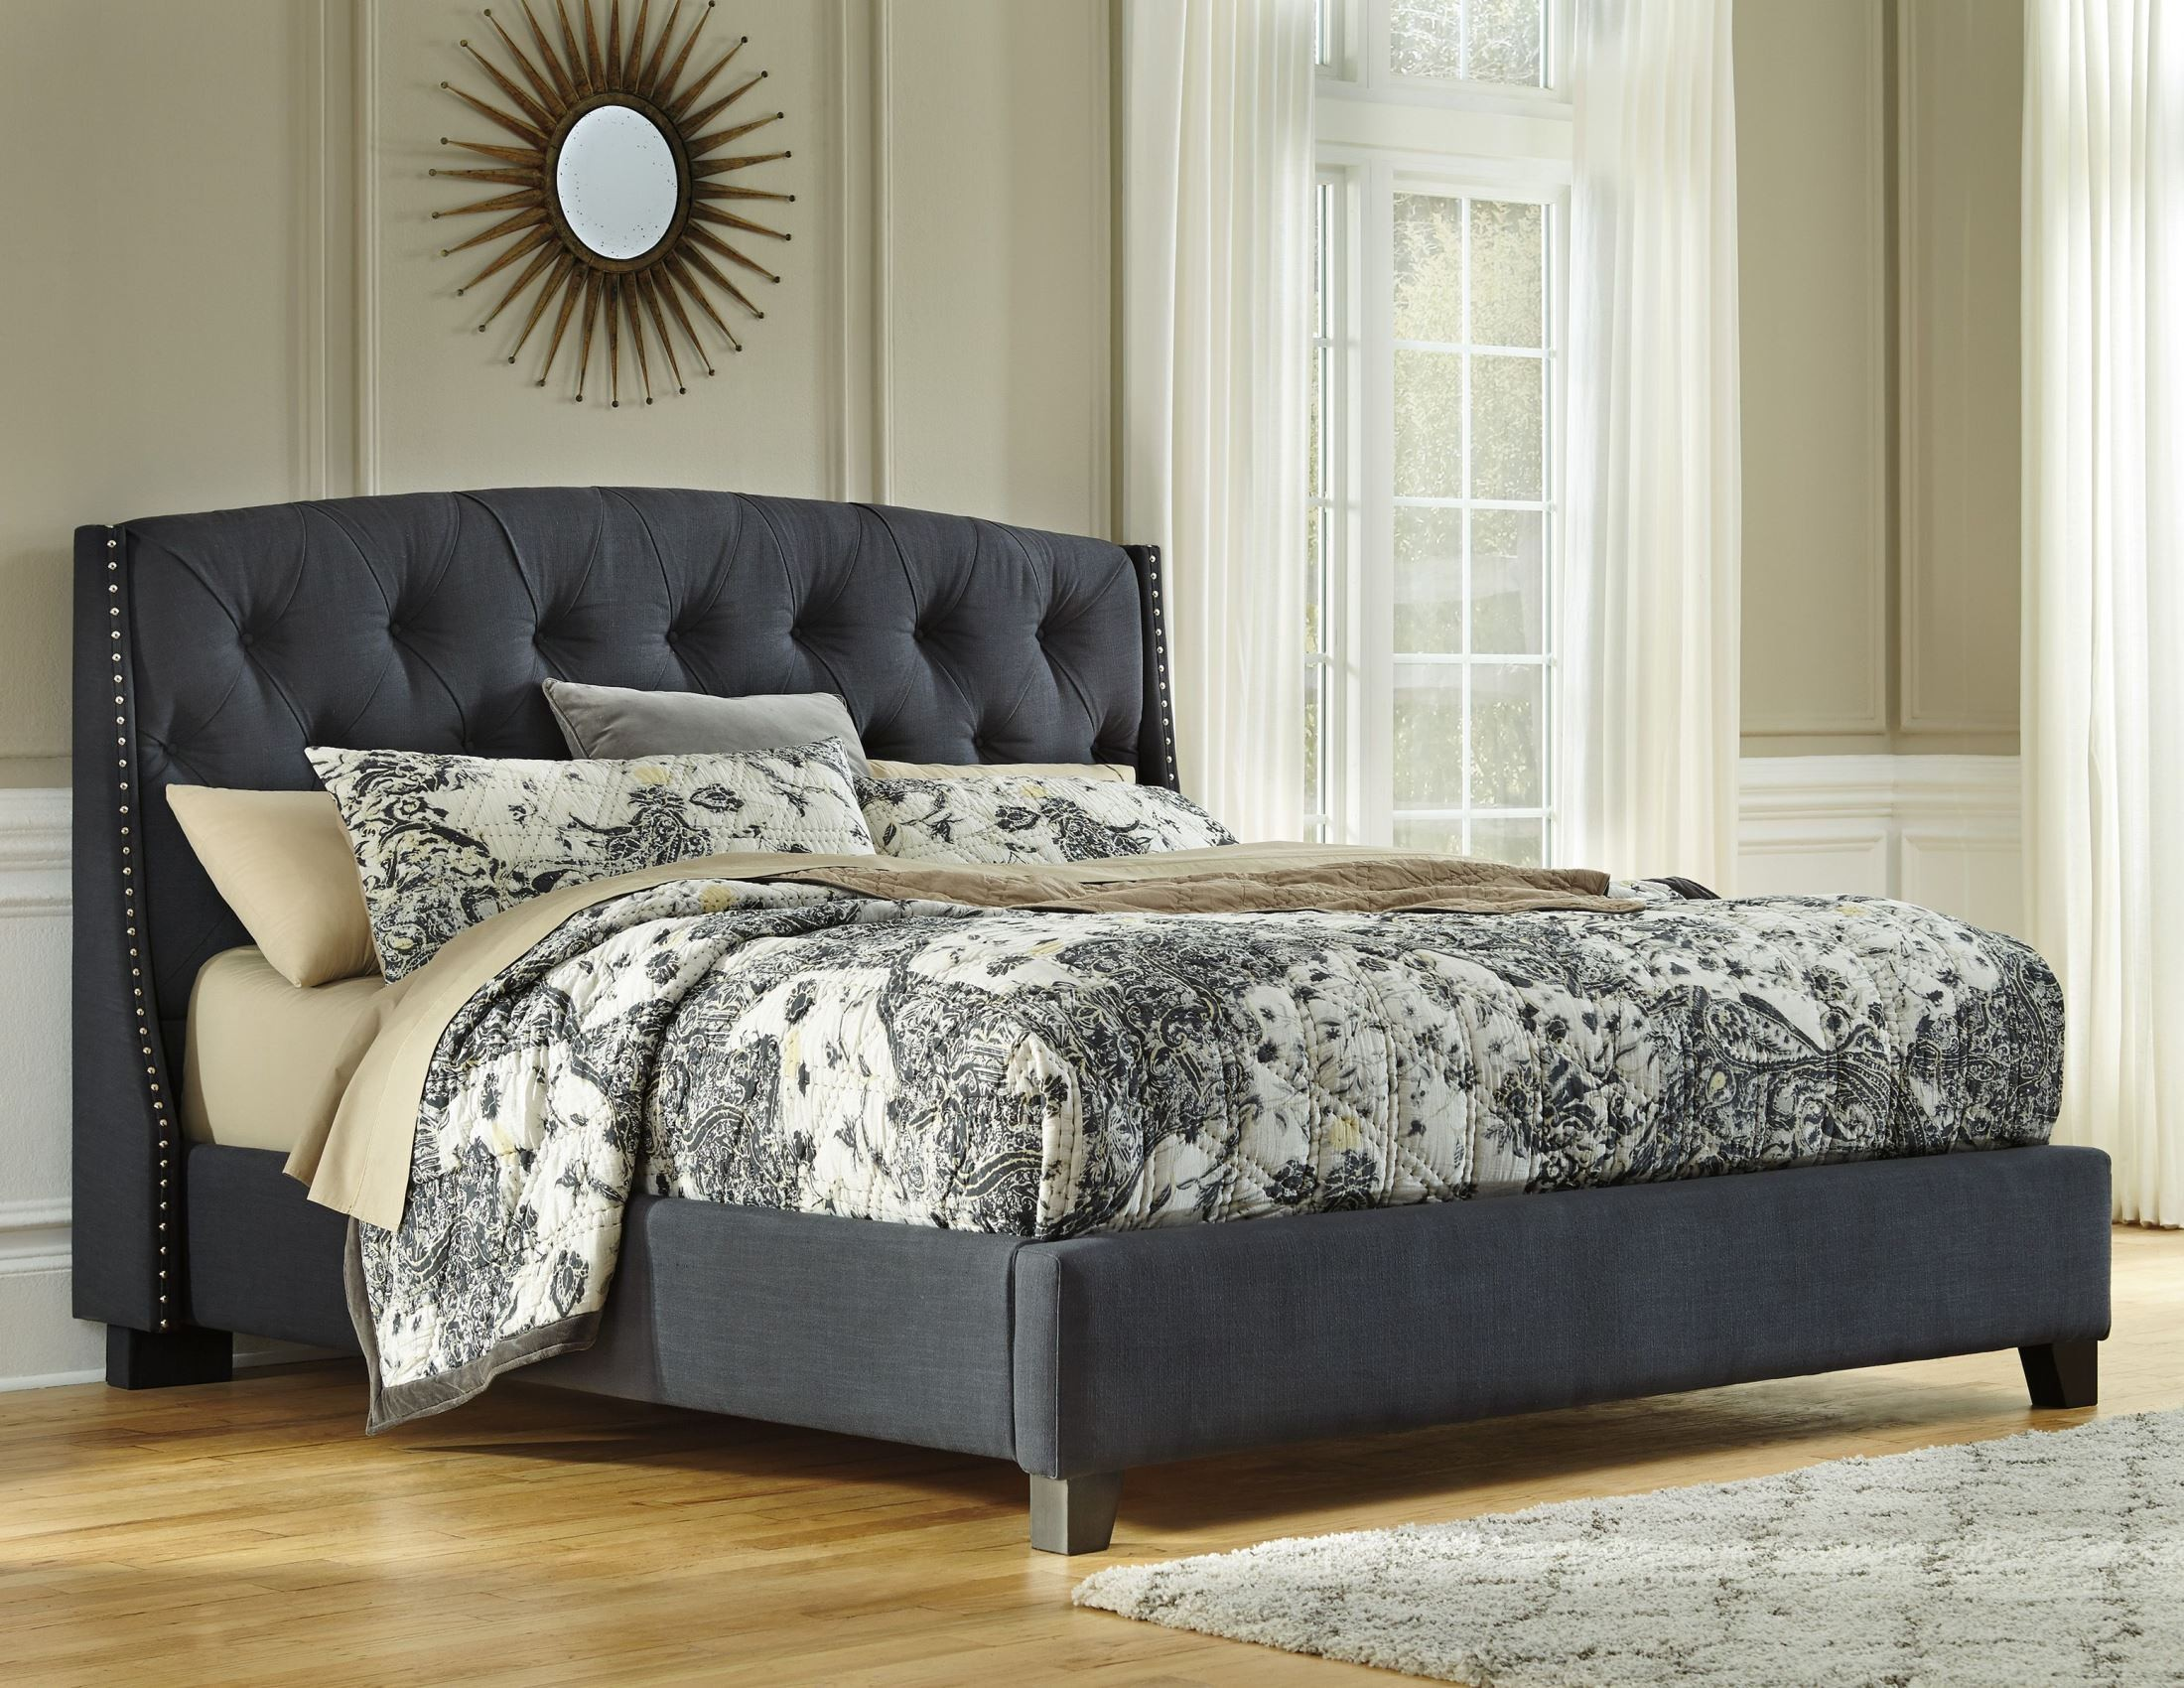 drawers platform upholstered full magnificent desk tufted king bench with twin frame large wonderful lovely furniture of headboard sets frames ashley ideas sleigh loft metal queen bed bedroom trundle walmart tags headboards charming size storage